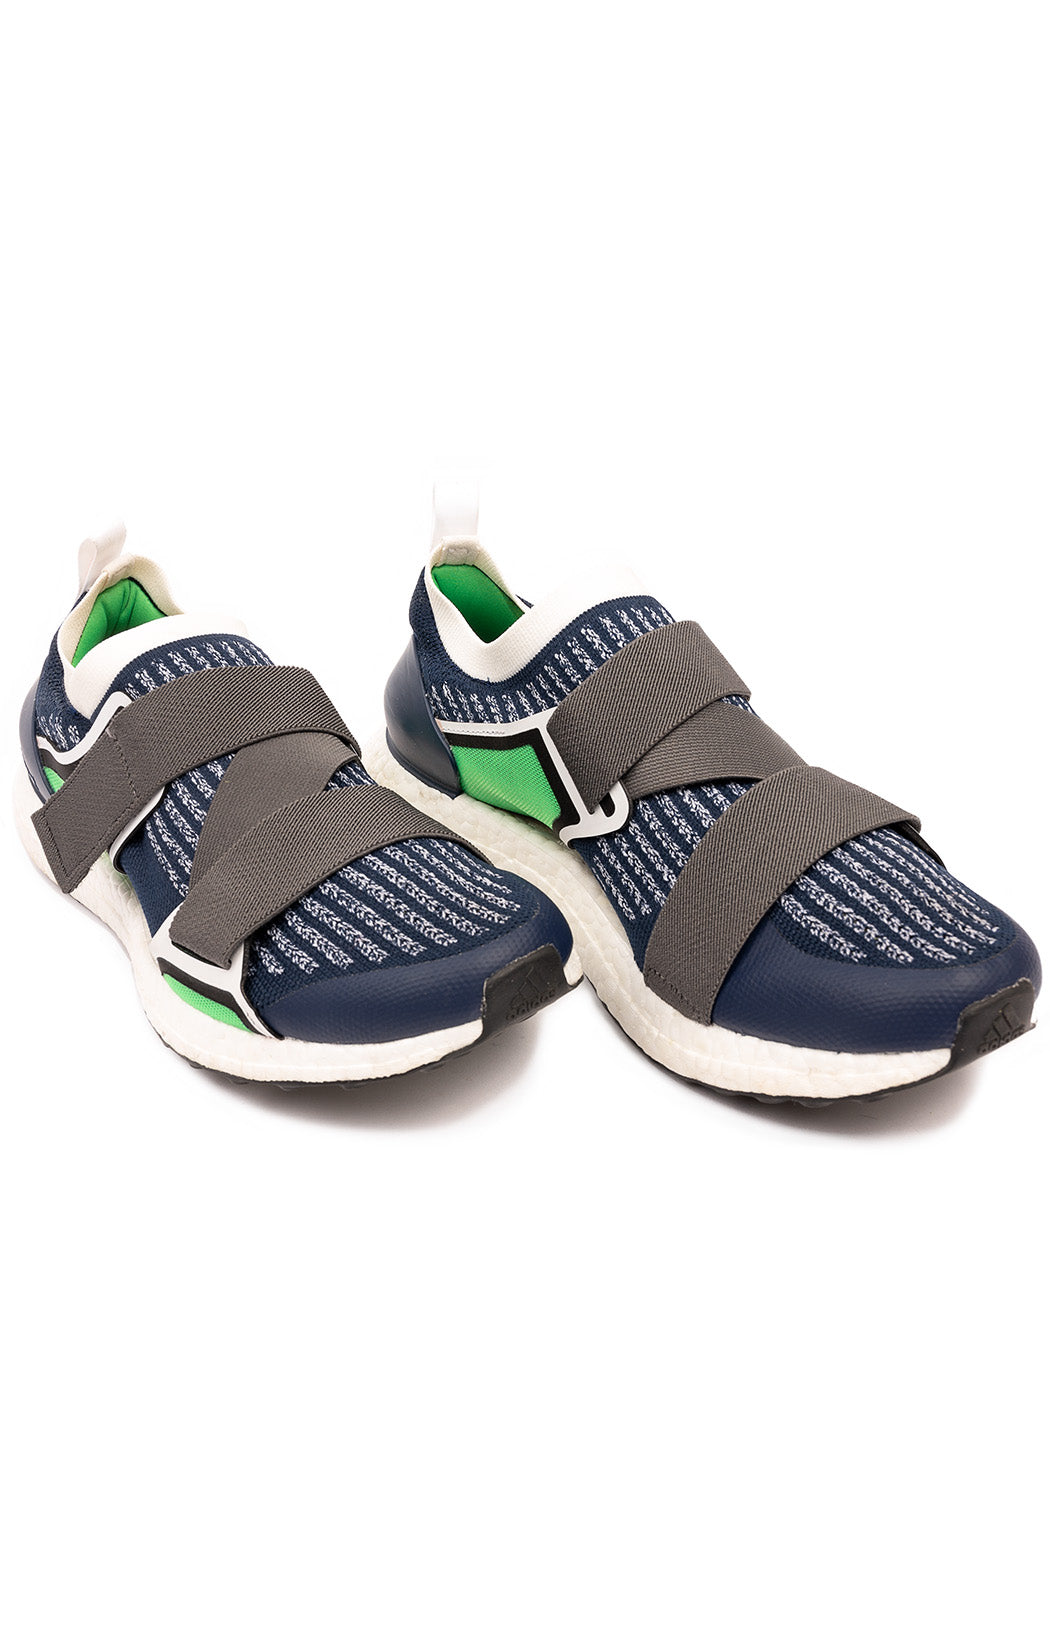 Navy white gray and green fabric slip-on tennis shoe with white soles